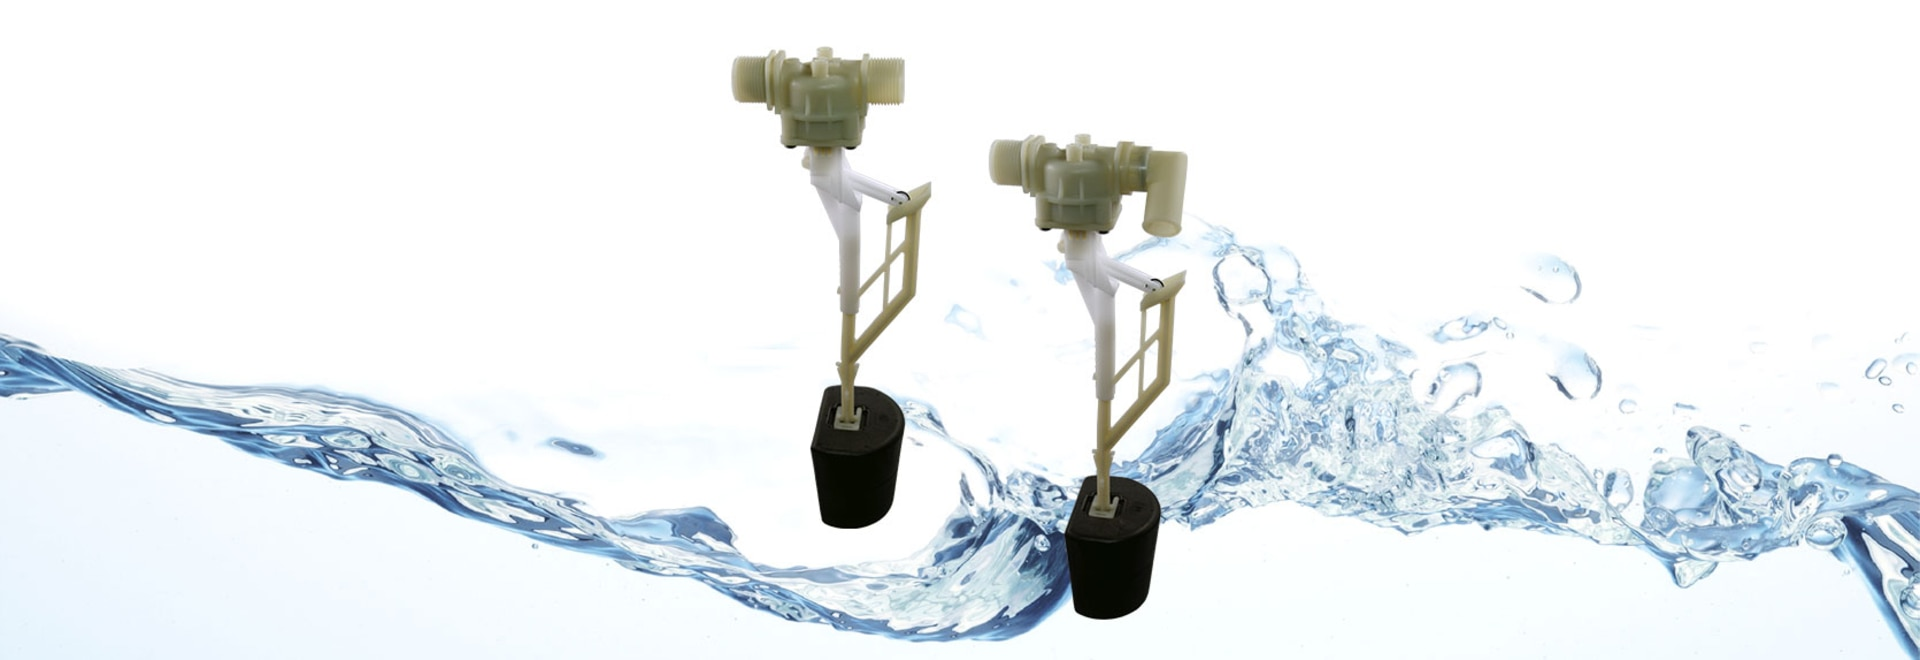 Float valves with vertical guide float